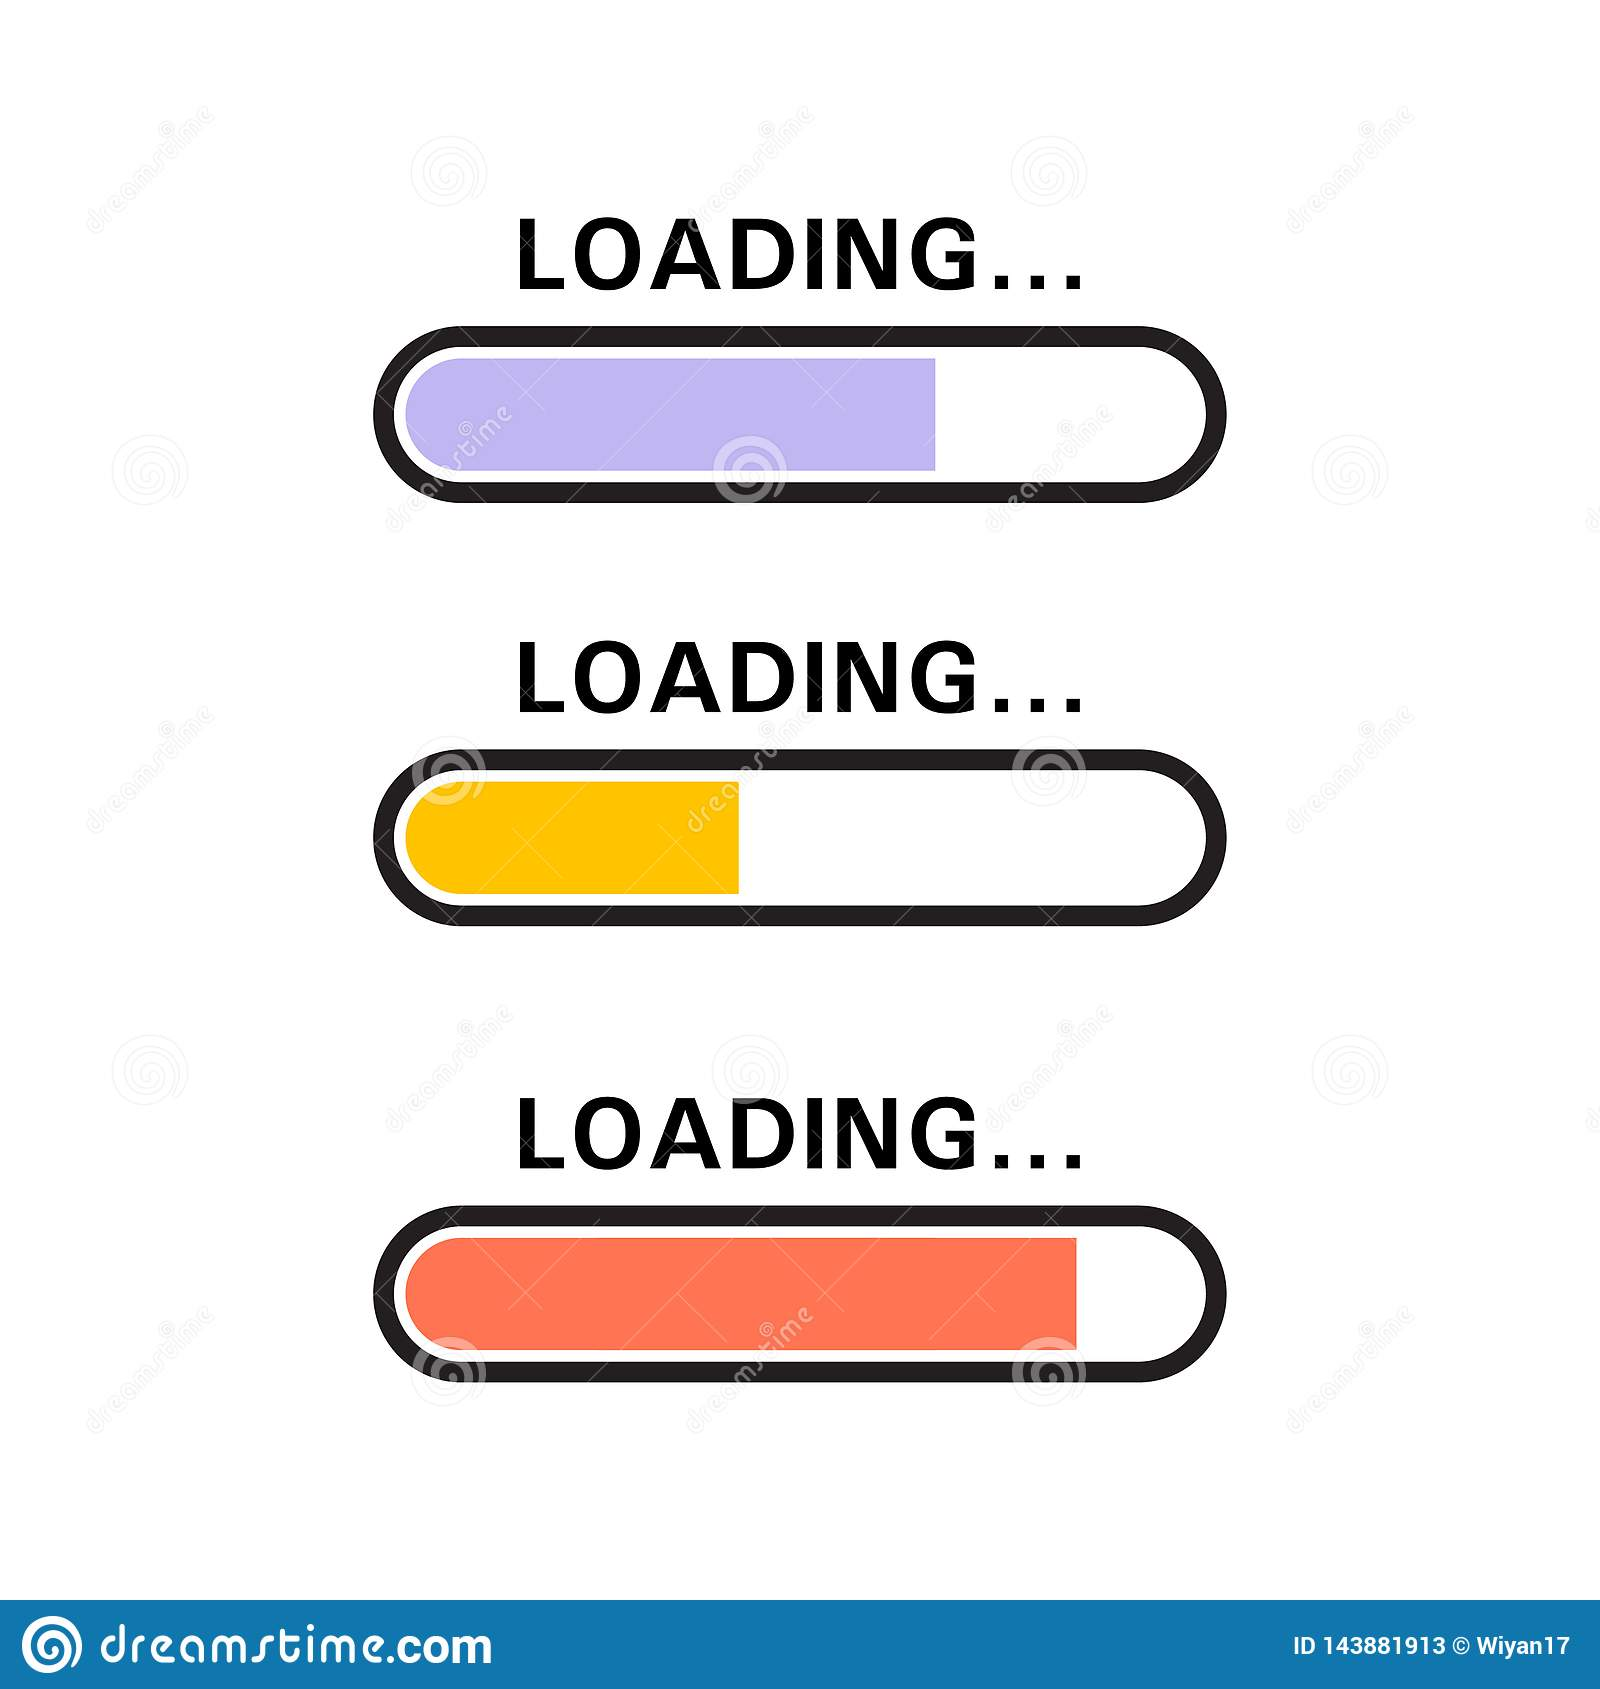 Loading Icon in blue, yellow, red color.